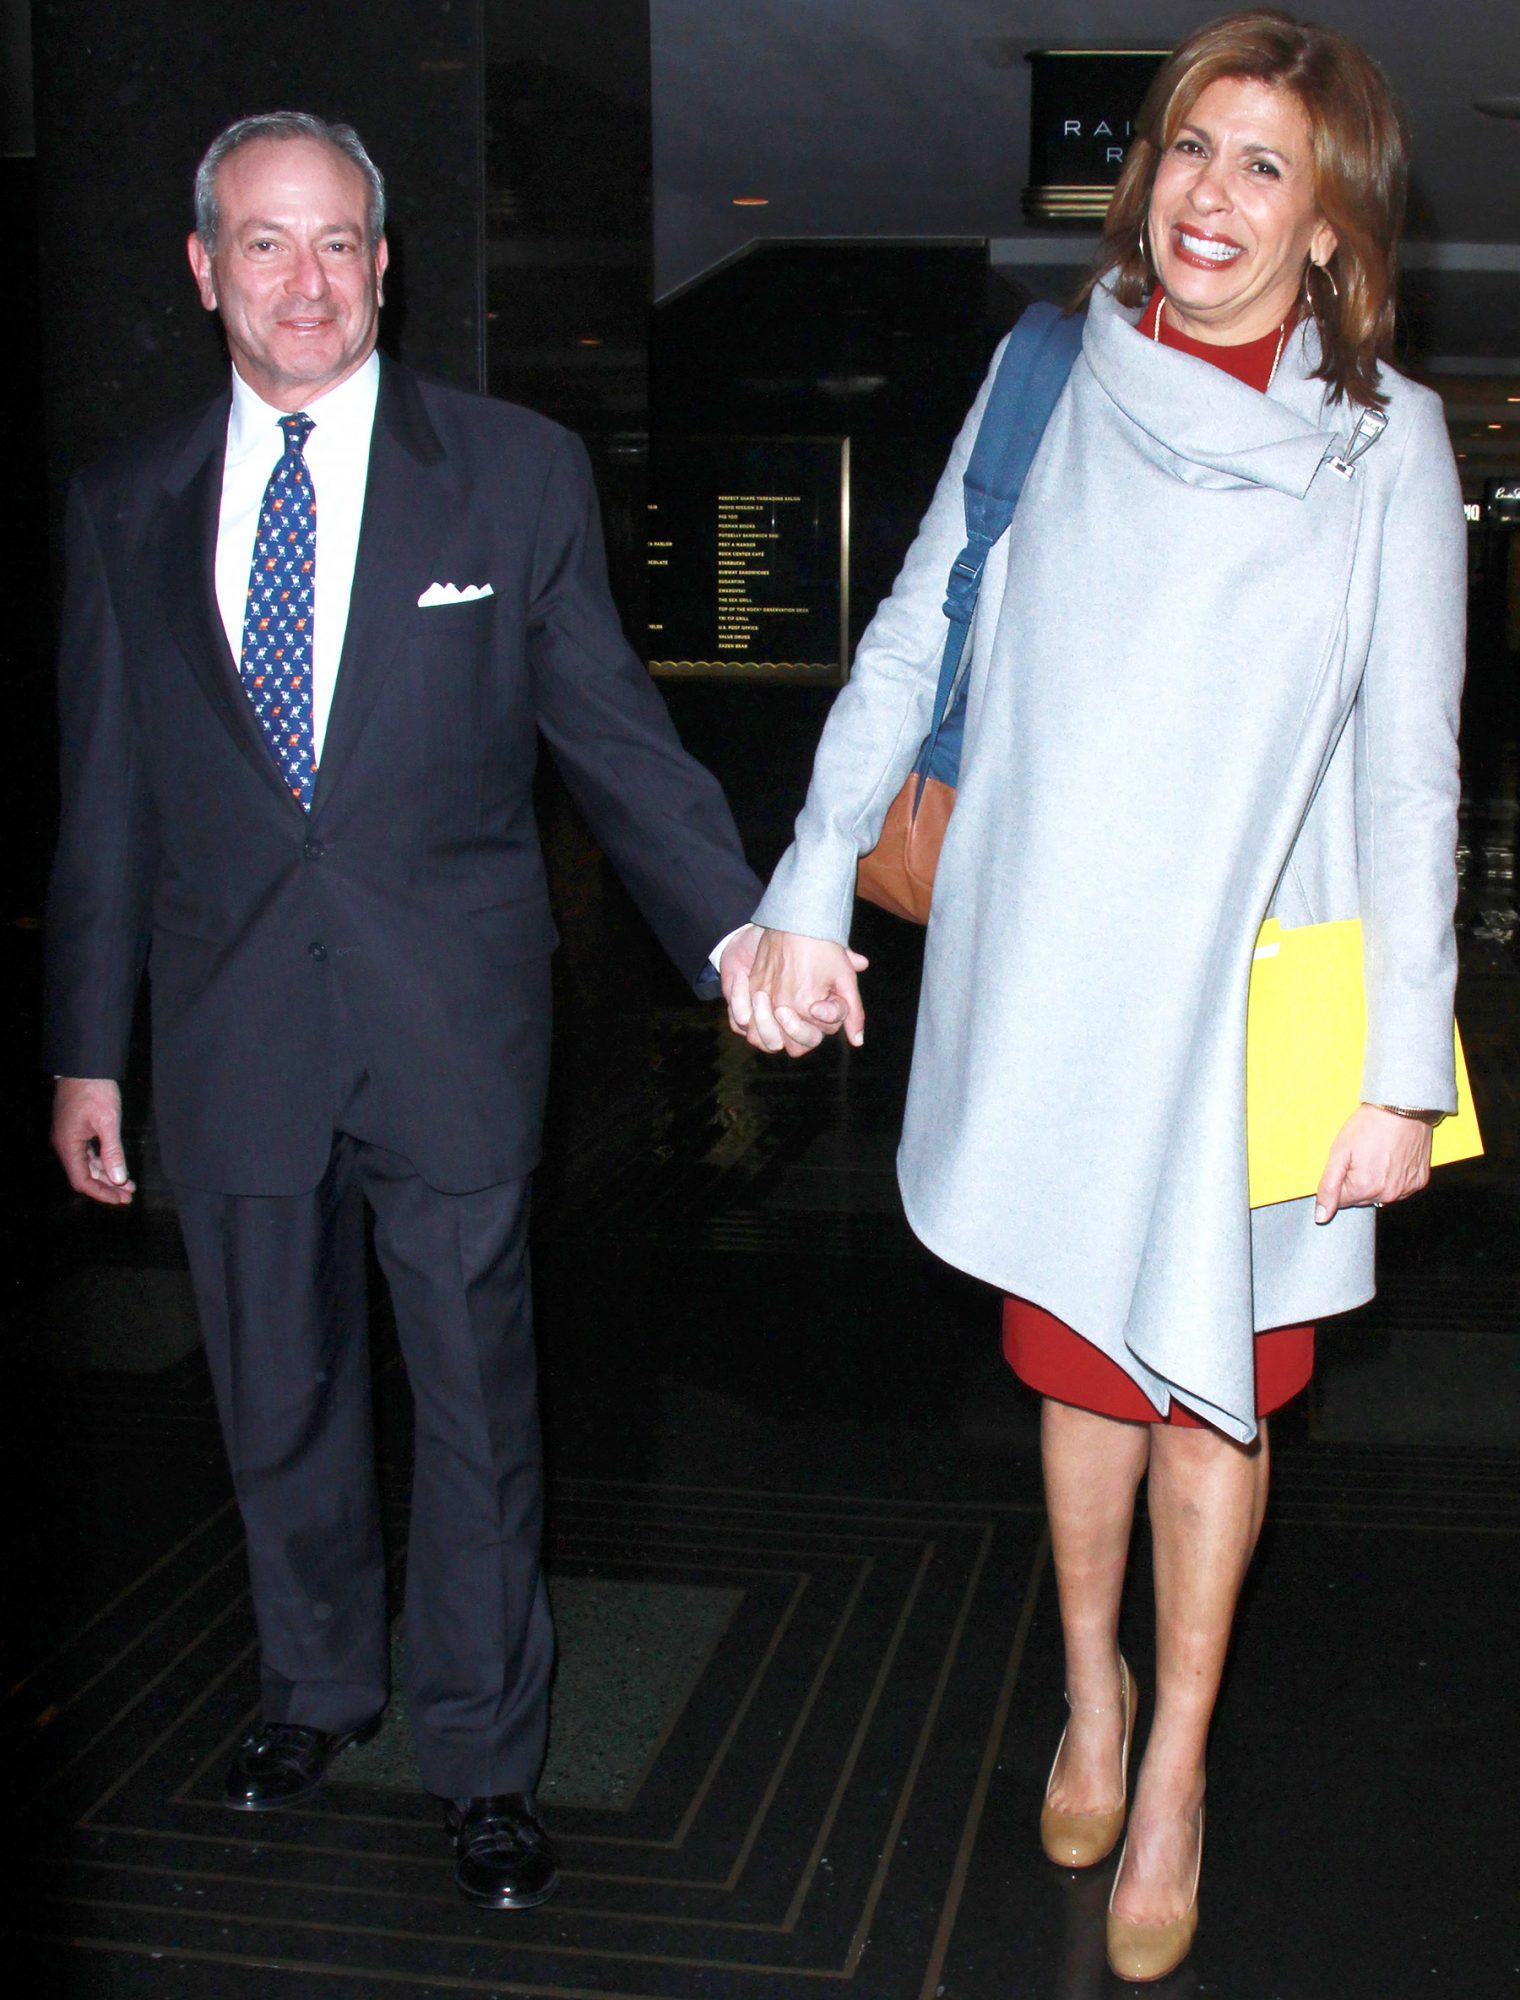 Hoda Kotb and Joel Schiffman Hold Hands While Leaving the NBC Store